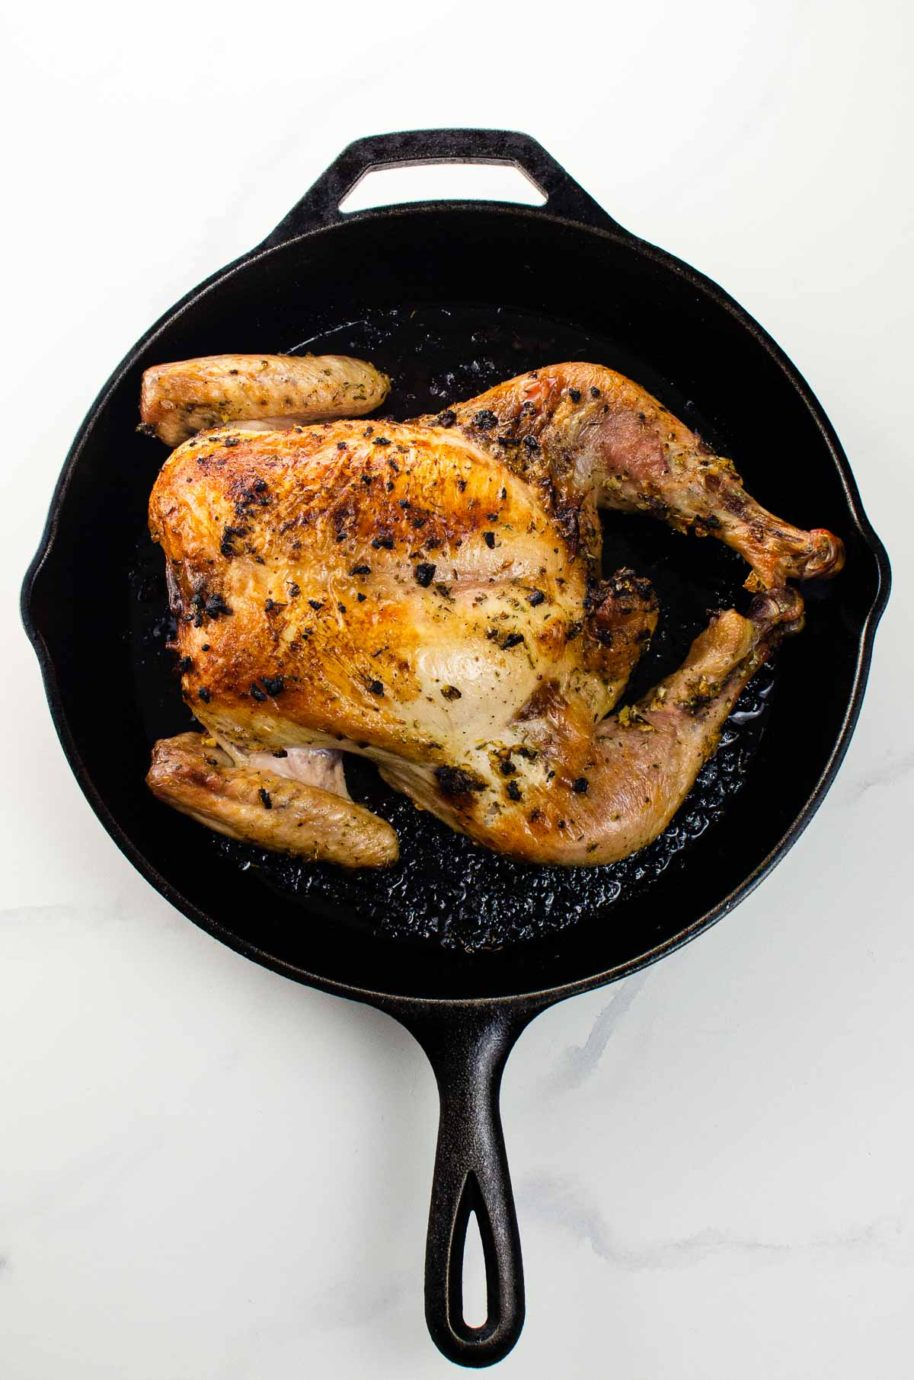 a roasted spatchcock chicken in a cast iron skillet